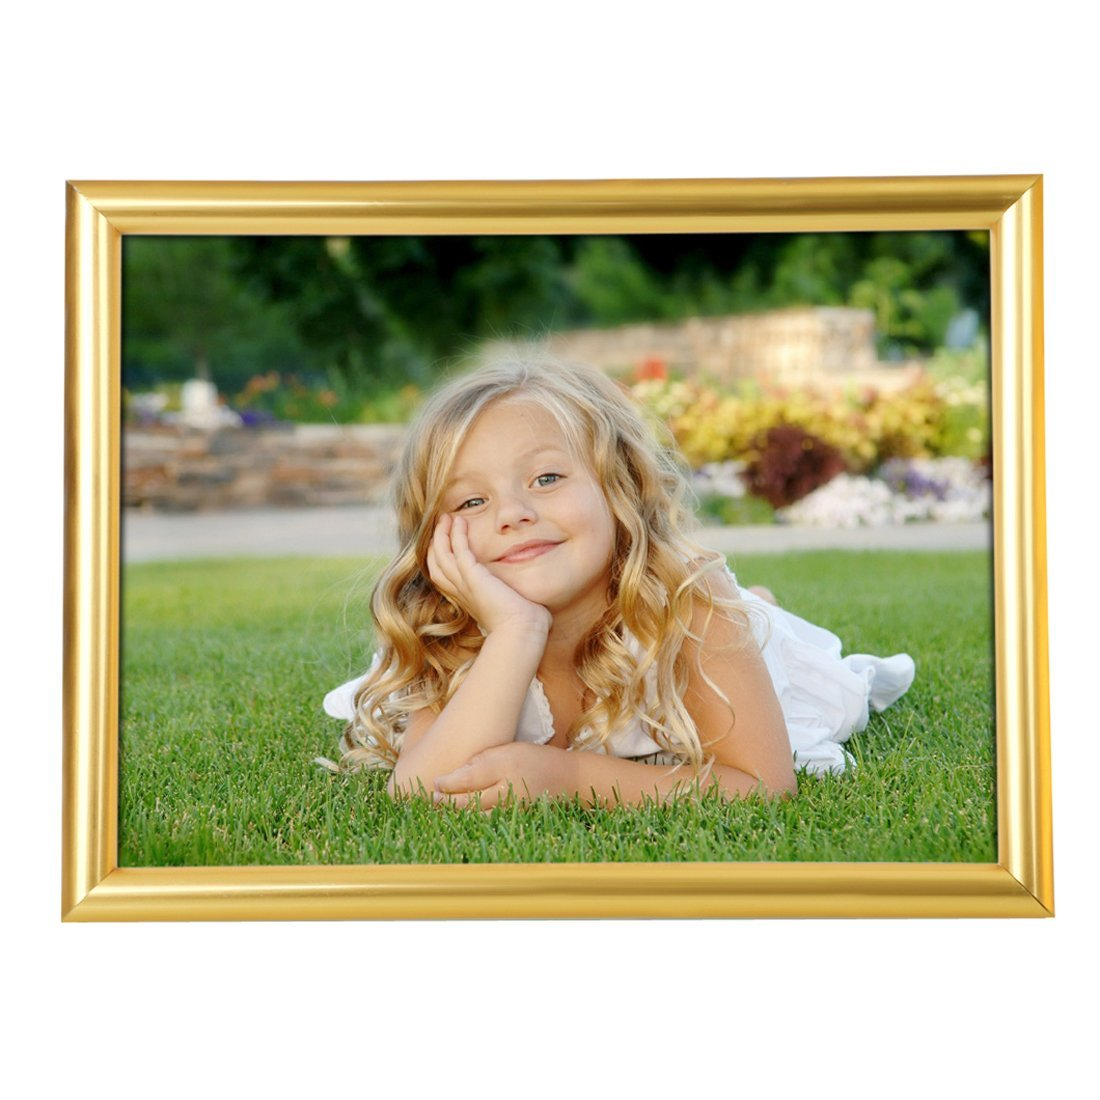 BOJIN 4x6 Inch Picture Frames Plastic Table Top Photo Frame 10x15 CM- Gold